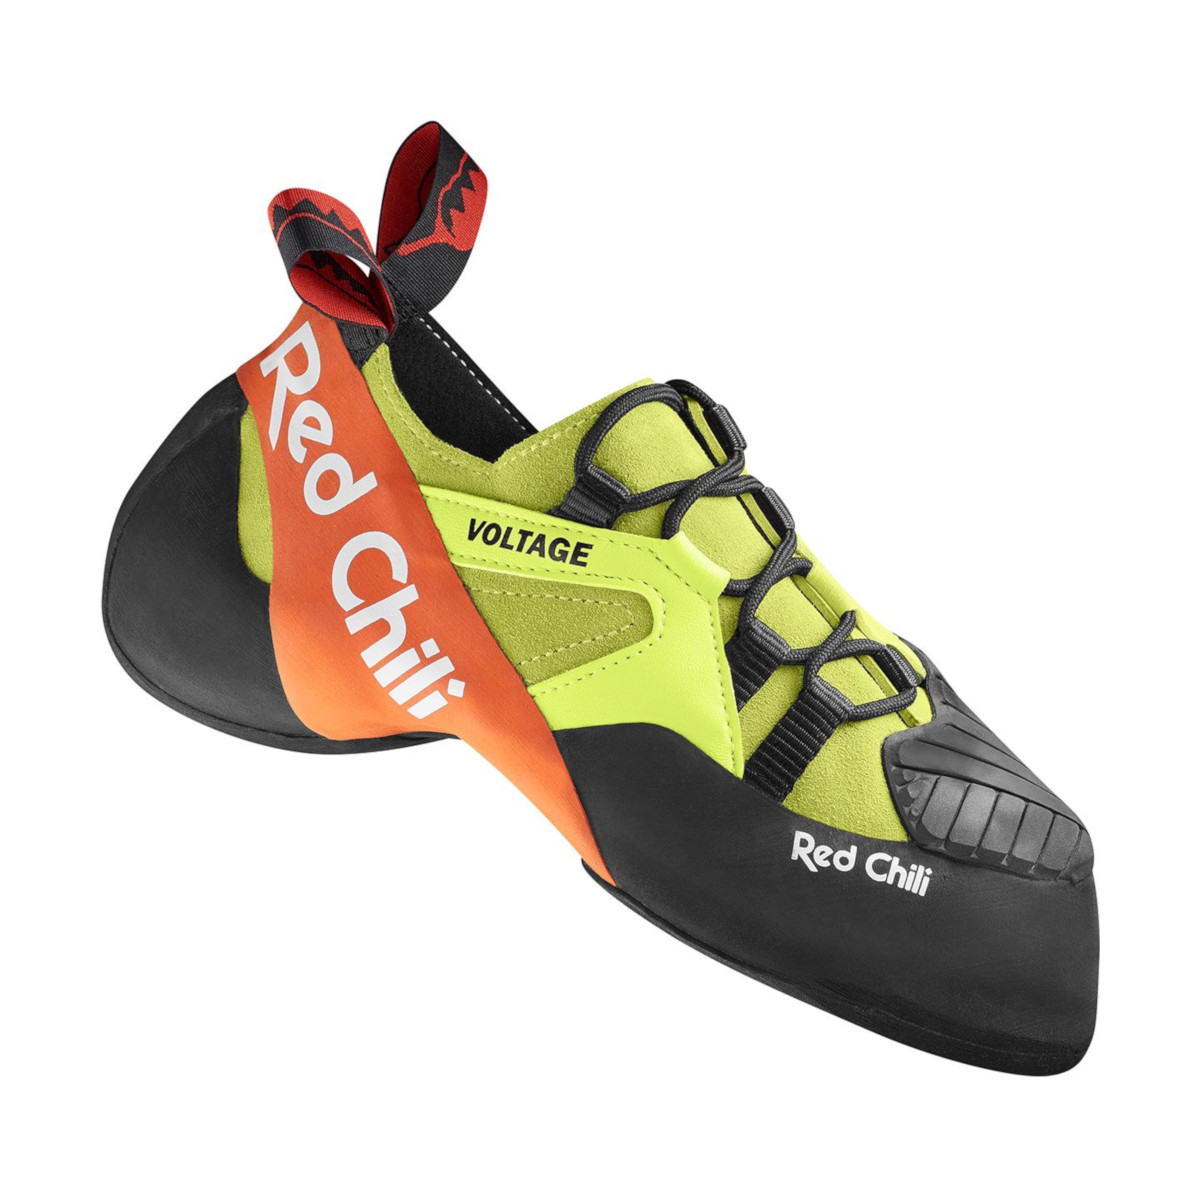 Red Chili Voltage Lace Climbing Shoe